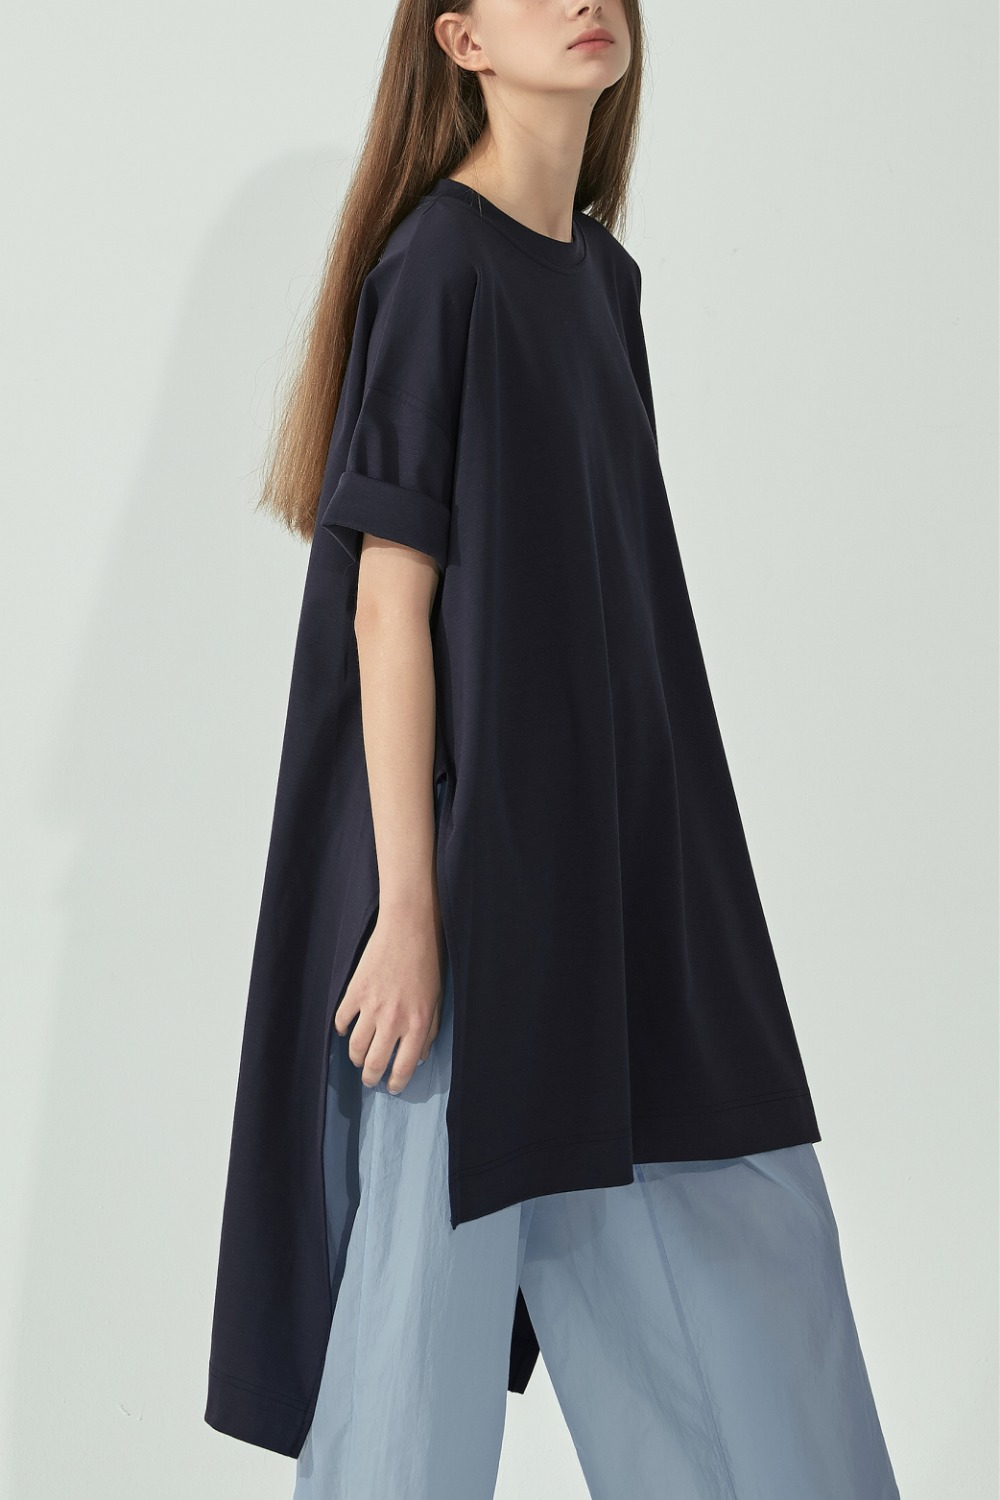 OVERSIZE SLIT LONG TOPTS92CO10